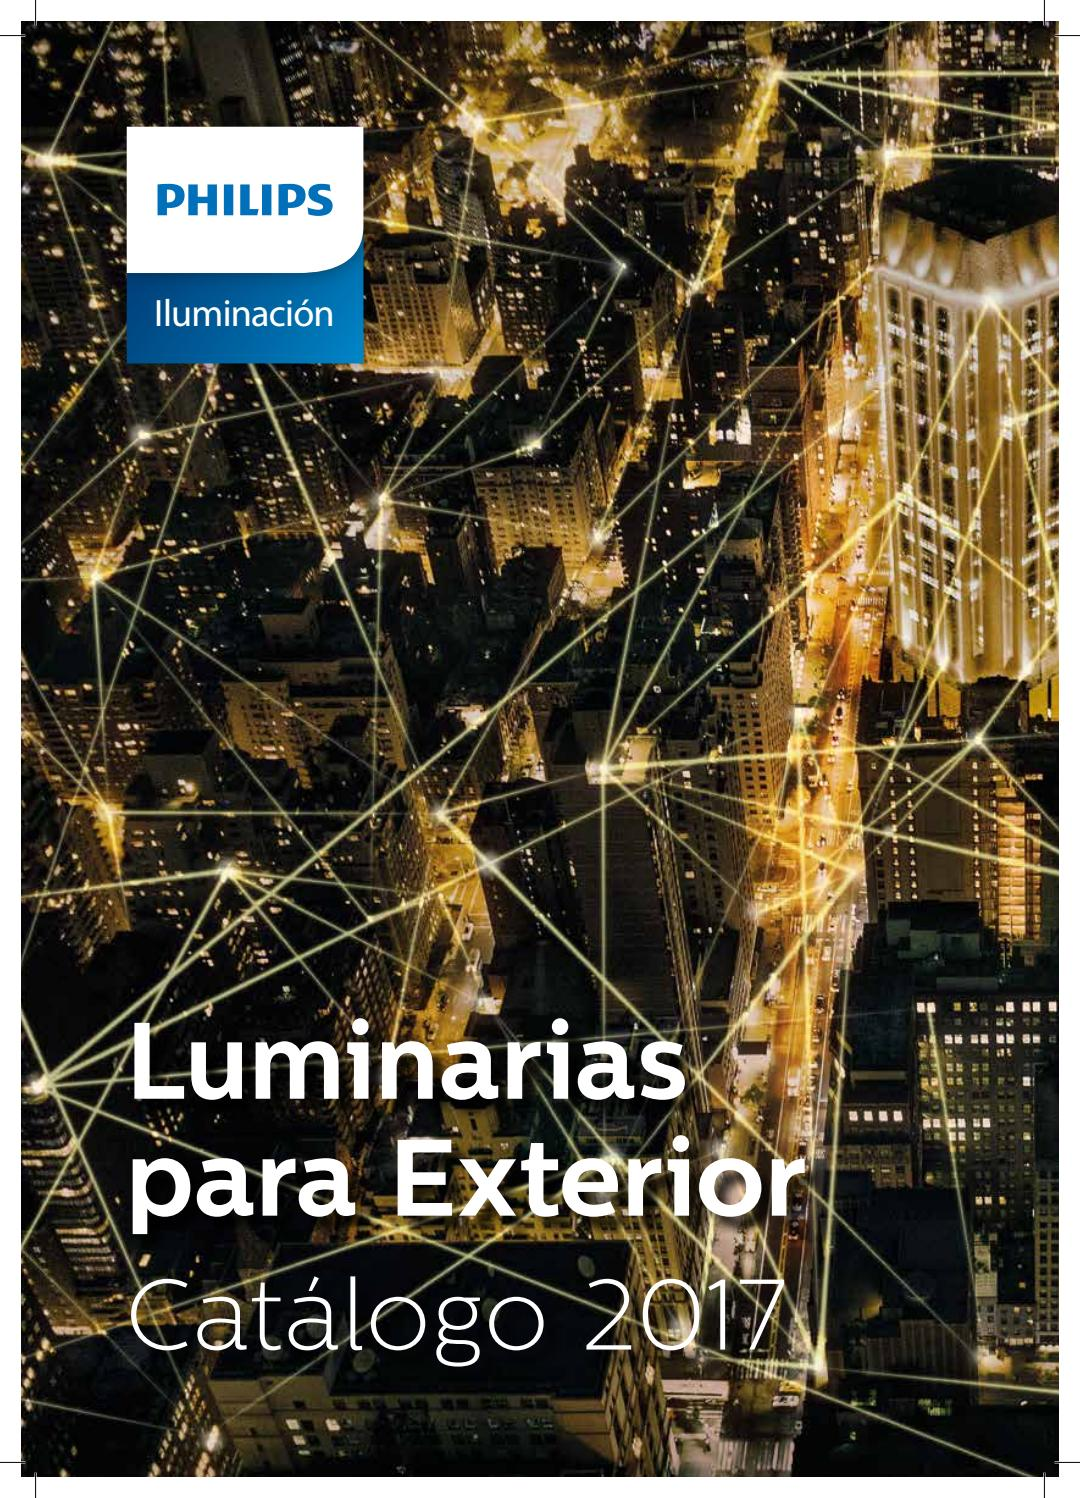 Catalogo Lamparas Philips Catálogo Luminarias Para Exterior By Philips Lighting Issuu